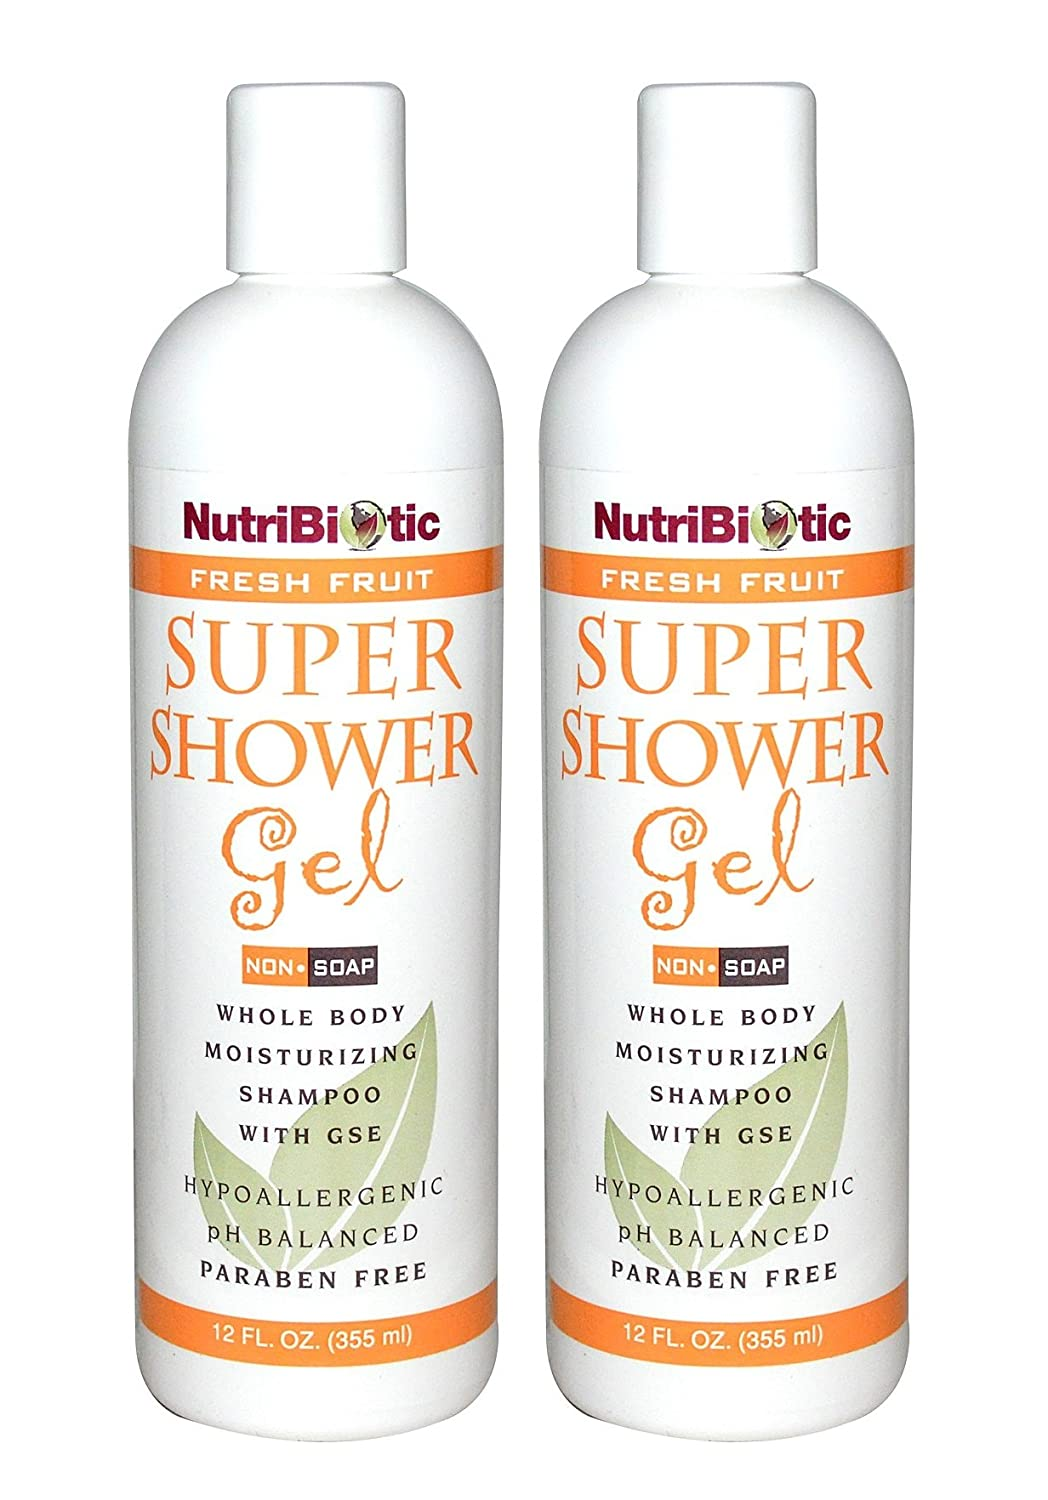 NutriBiotic Fresh Fruit Super Shower Gel (Pack of 2) with Grapefruit Seed Extract, Cucumber, Matricaria and Comfrey, 12 fl. oz.